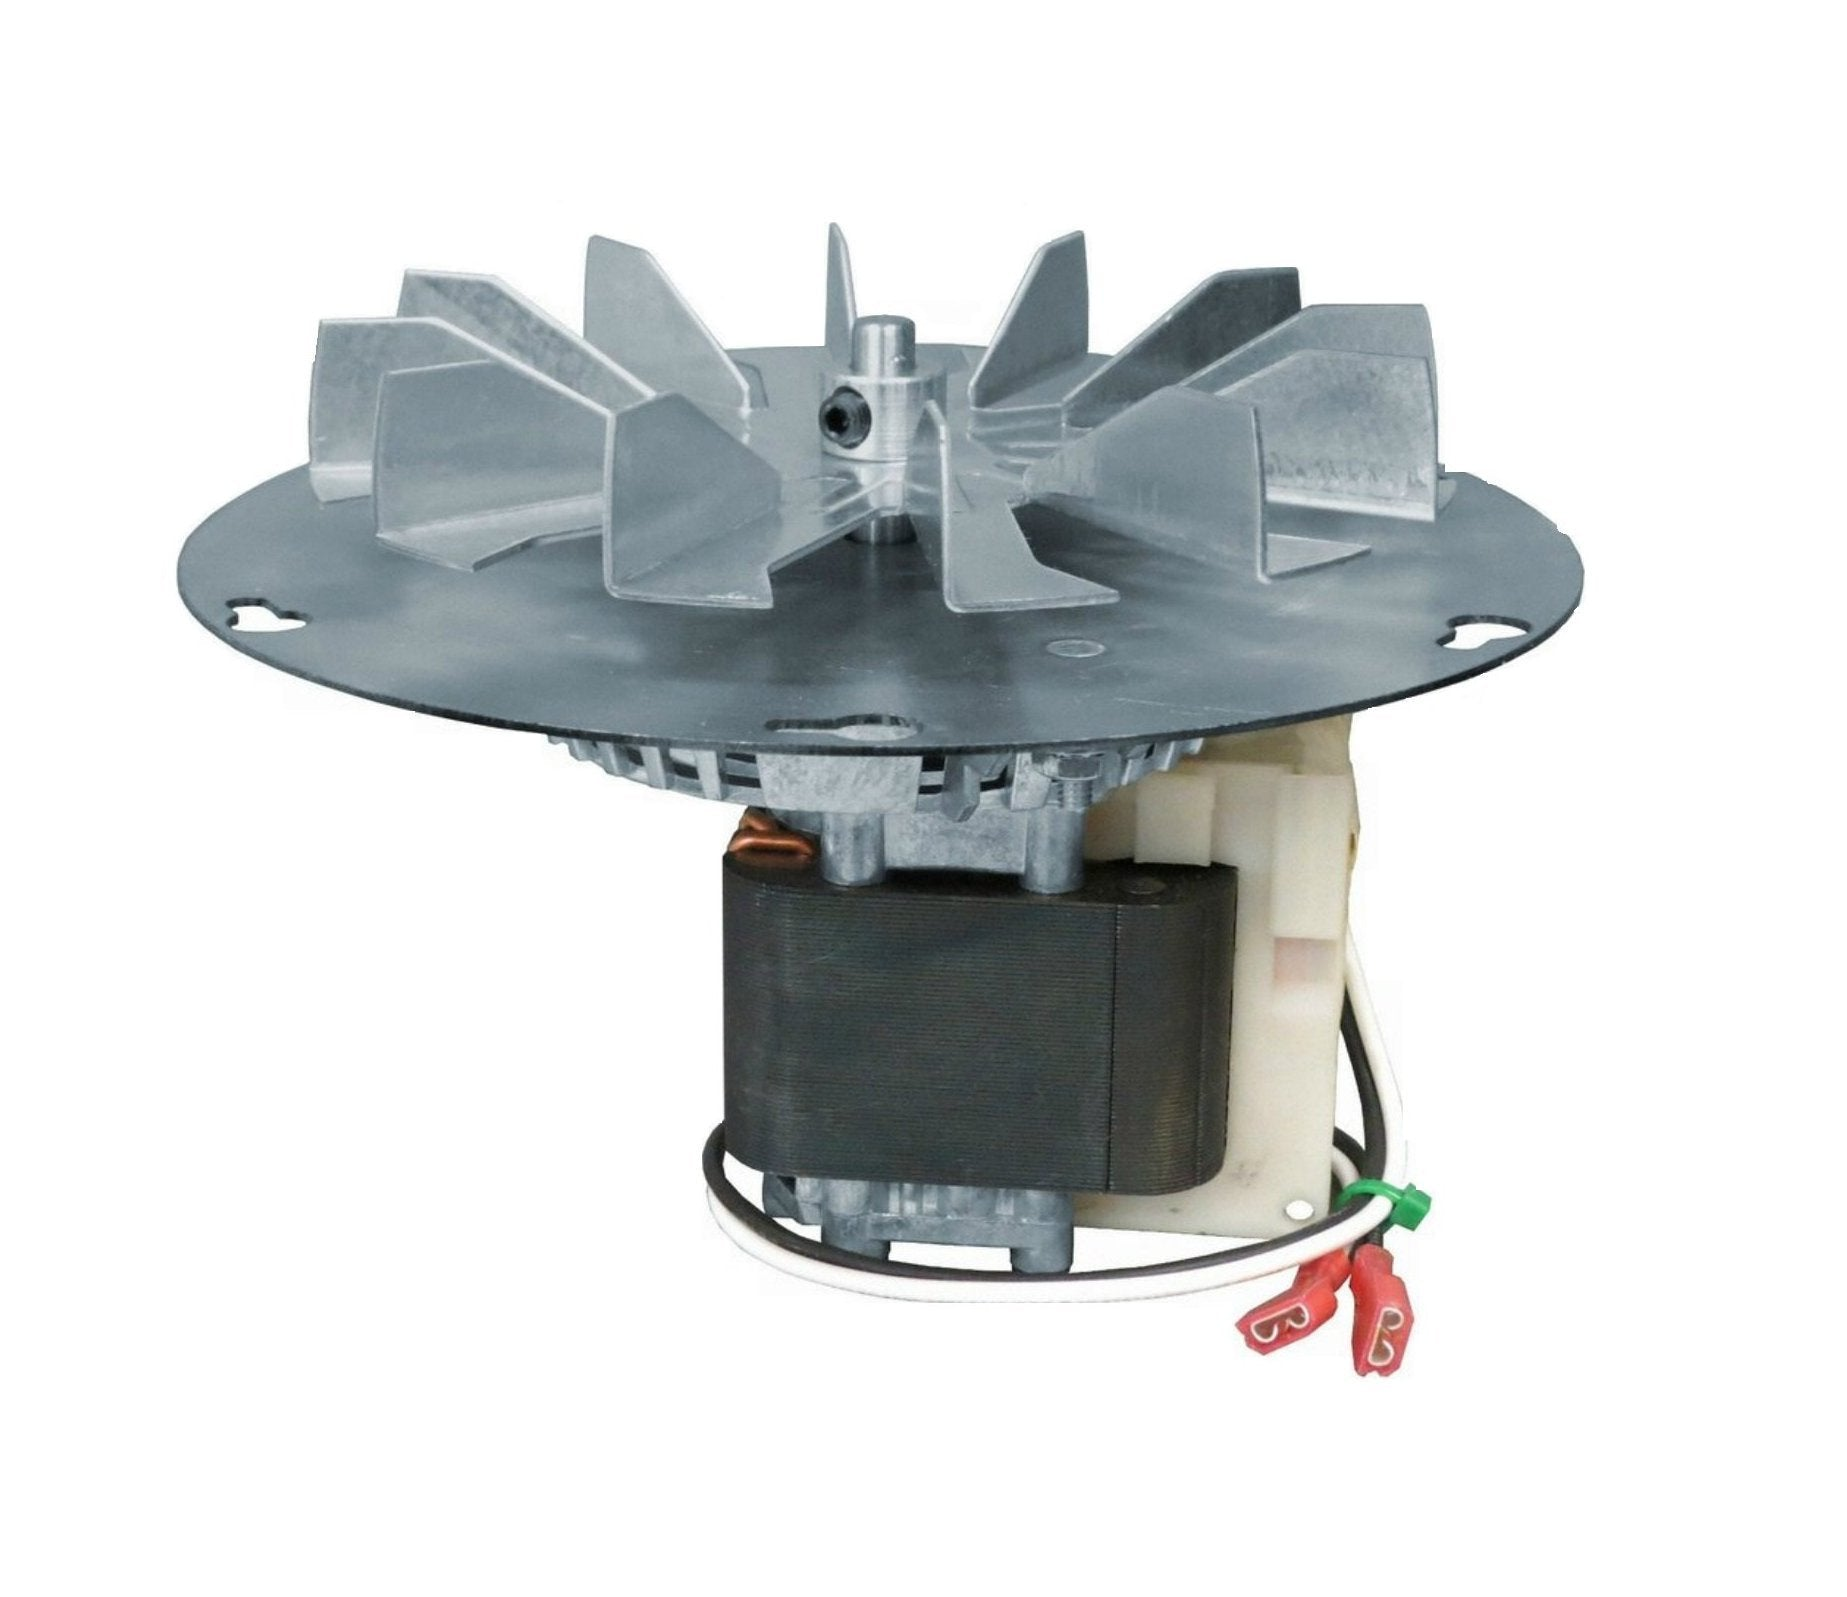 Enviro Exhaust blower Motor Fits Many Models, 50-1901-AMP